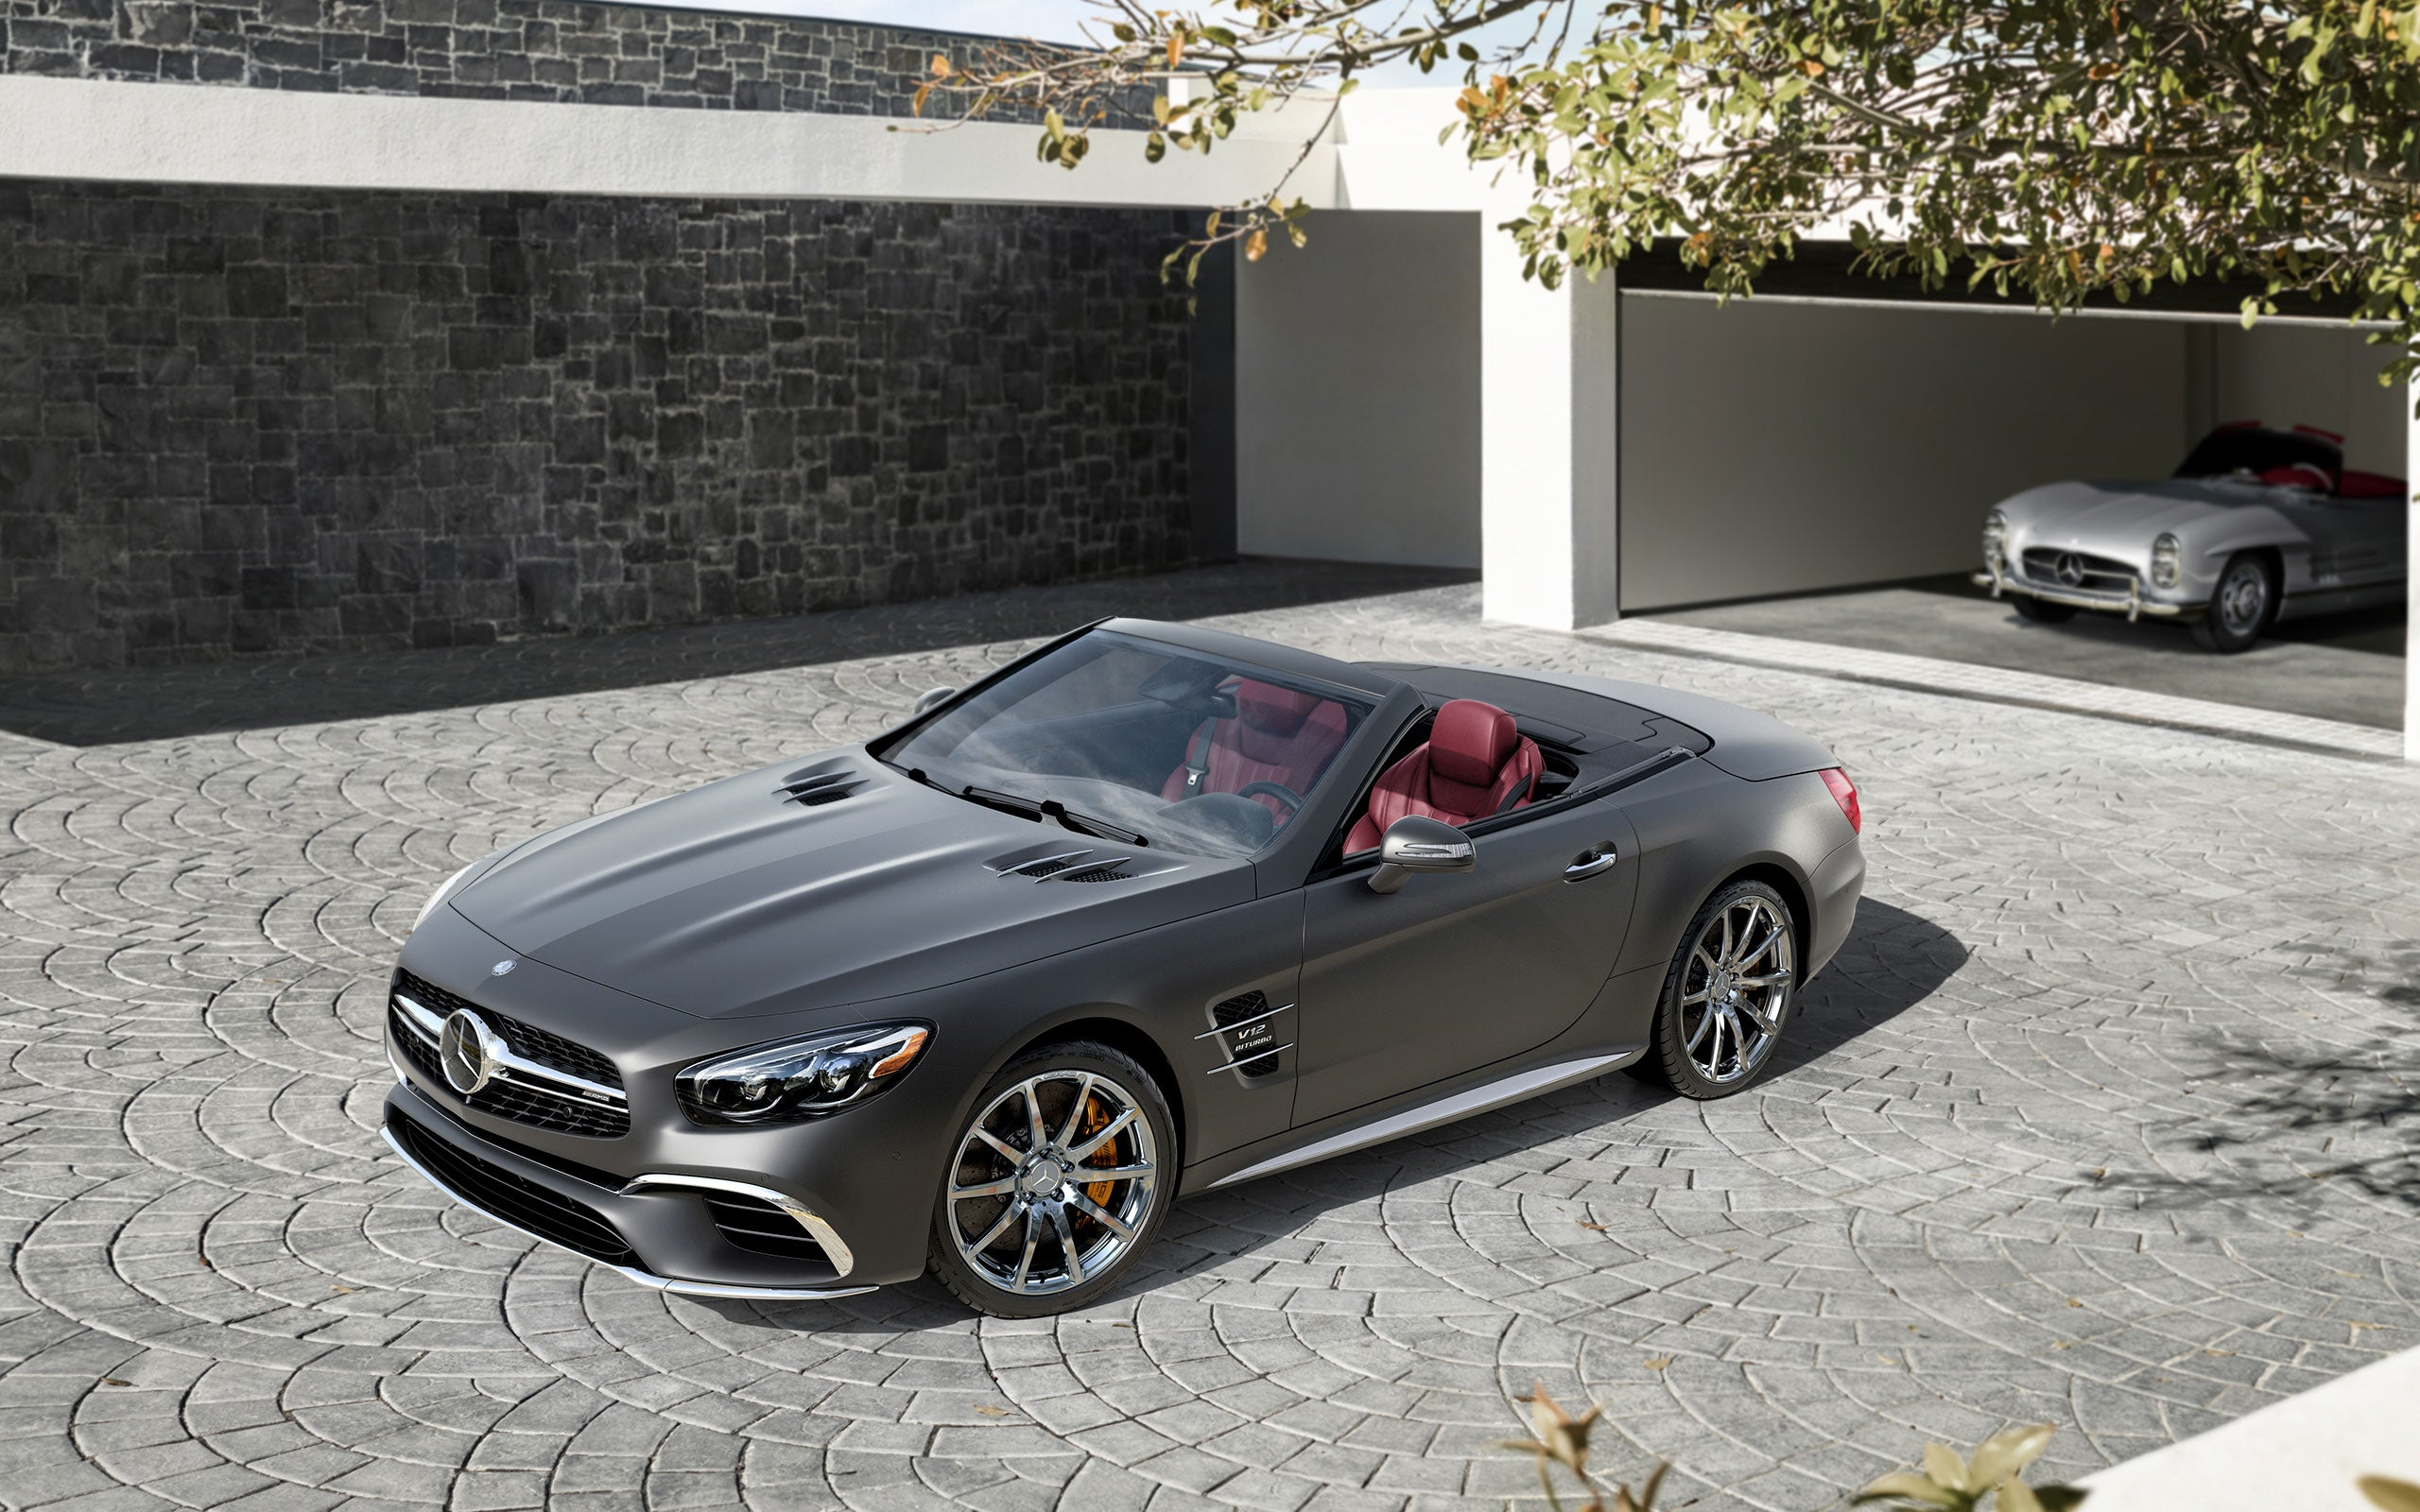 2017 mercedes benz sl class roadster in cary nc mercedes benz of cary. Black Bedroom Furniture Sets. Home Design Ideas